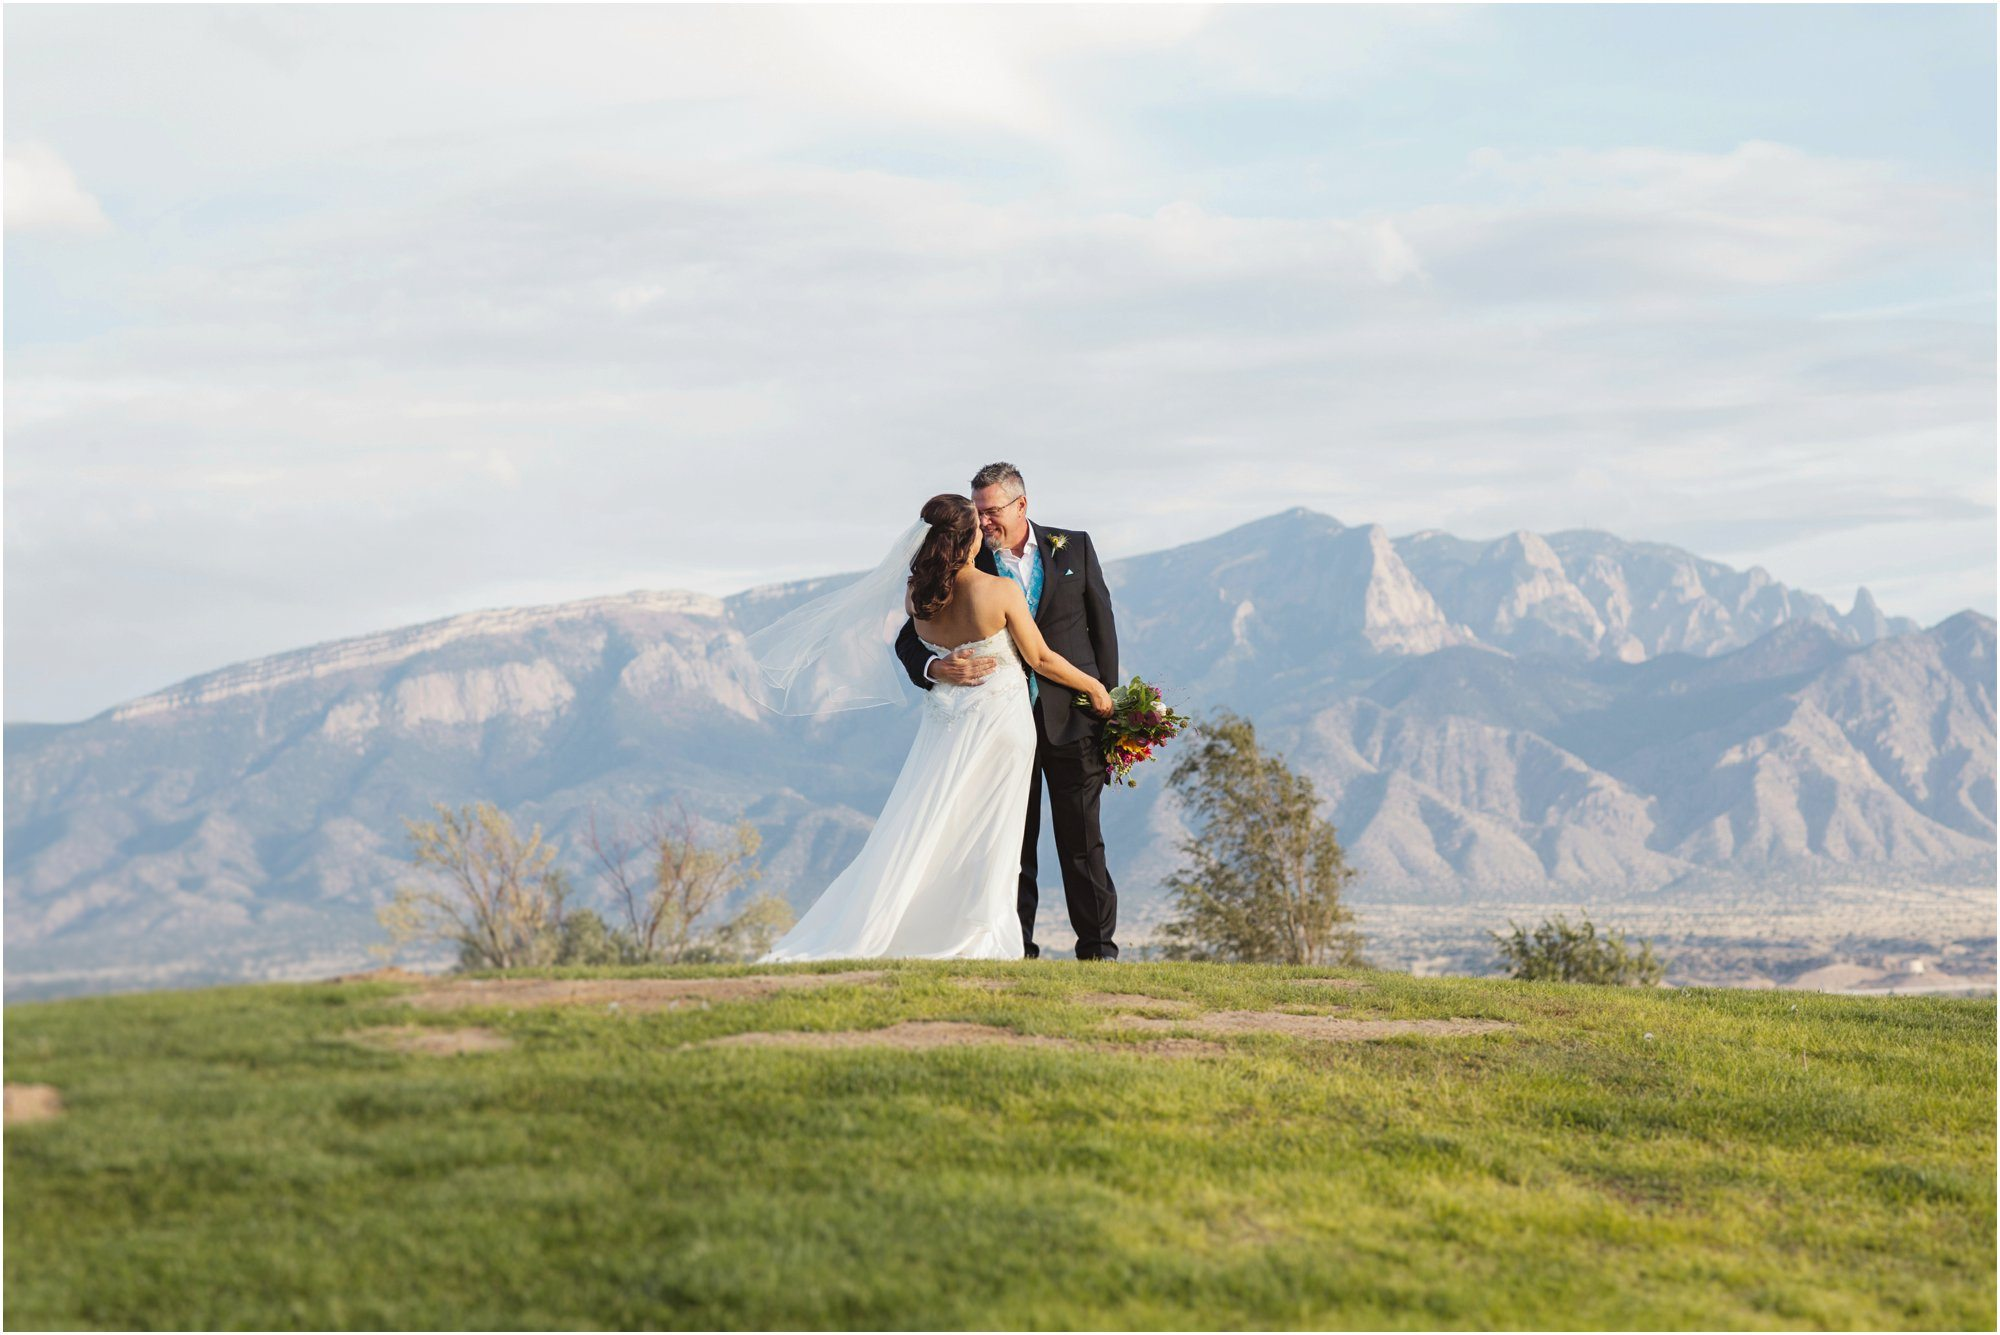 057BlueRosePhotography_ Albuquerque wedding photographers